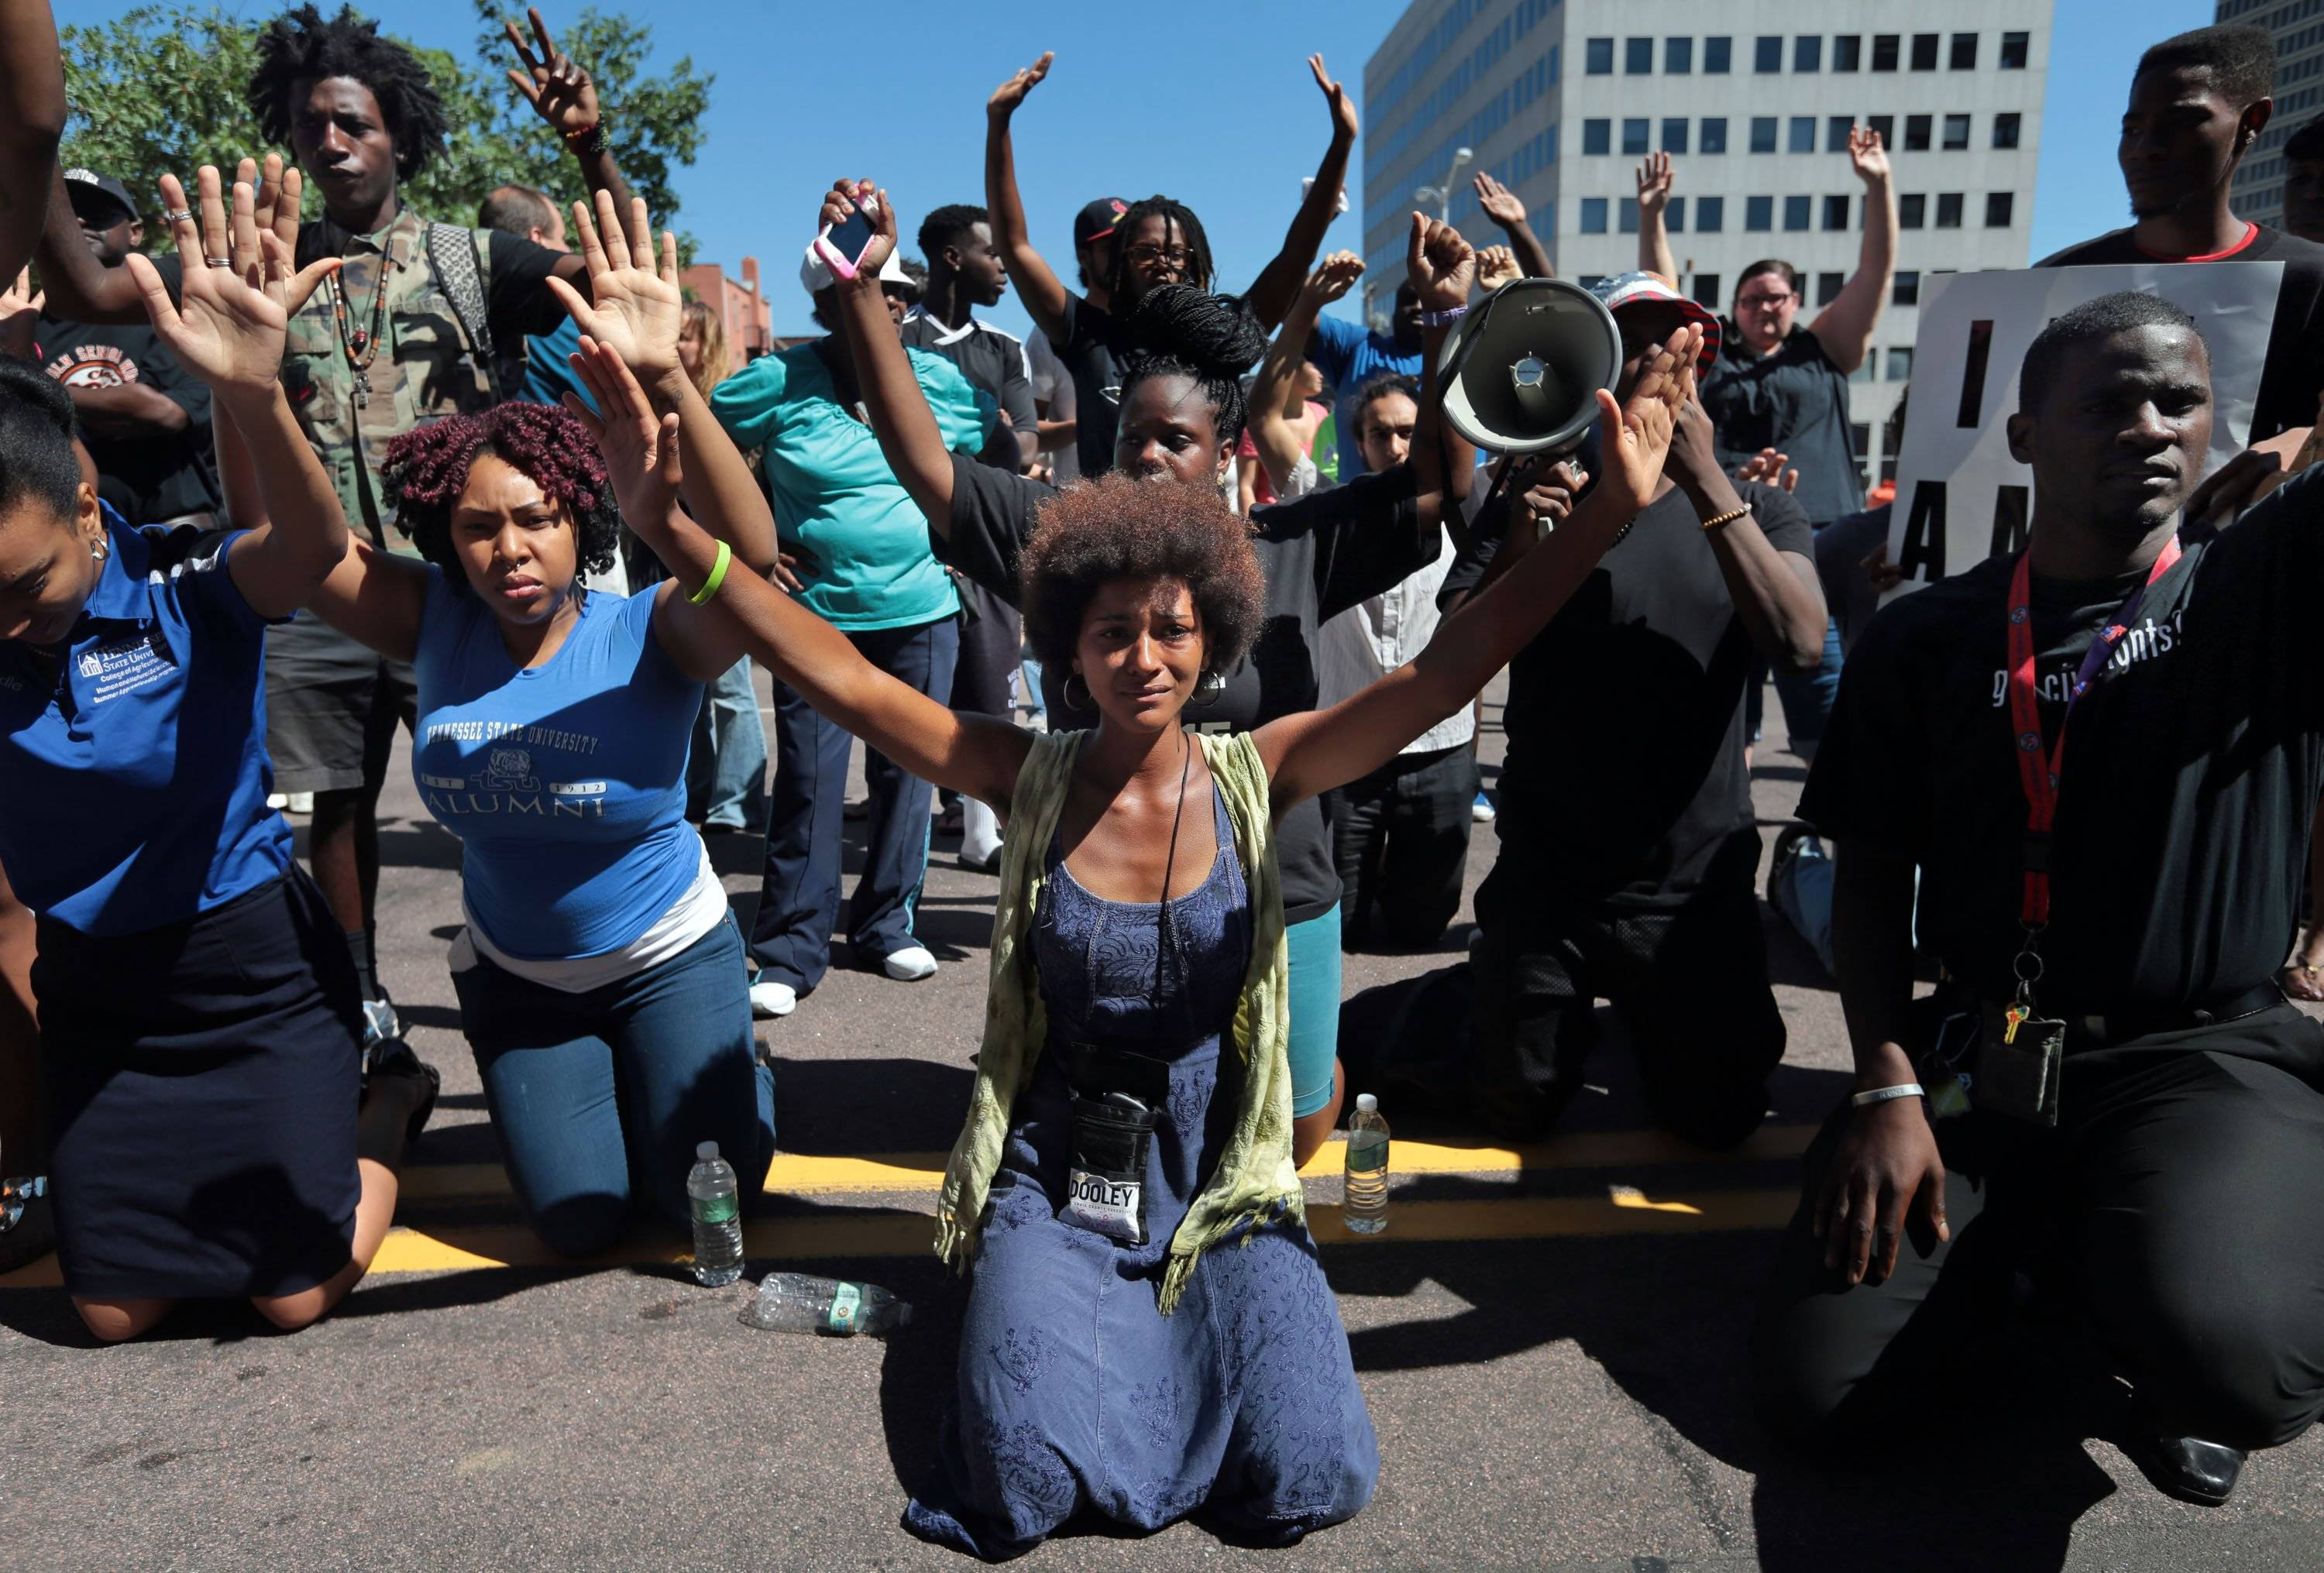 Protestors drop to their knees and put their arms in the air during a rally for Michael Brown, who was shot and killed by a Ferguson police officer, in Clayton, Mo., in this Aug. 12 file photo.